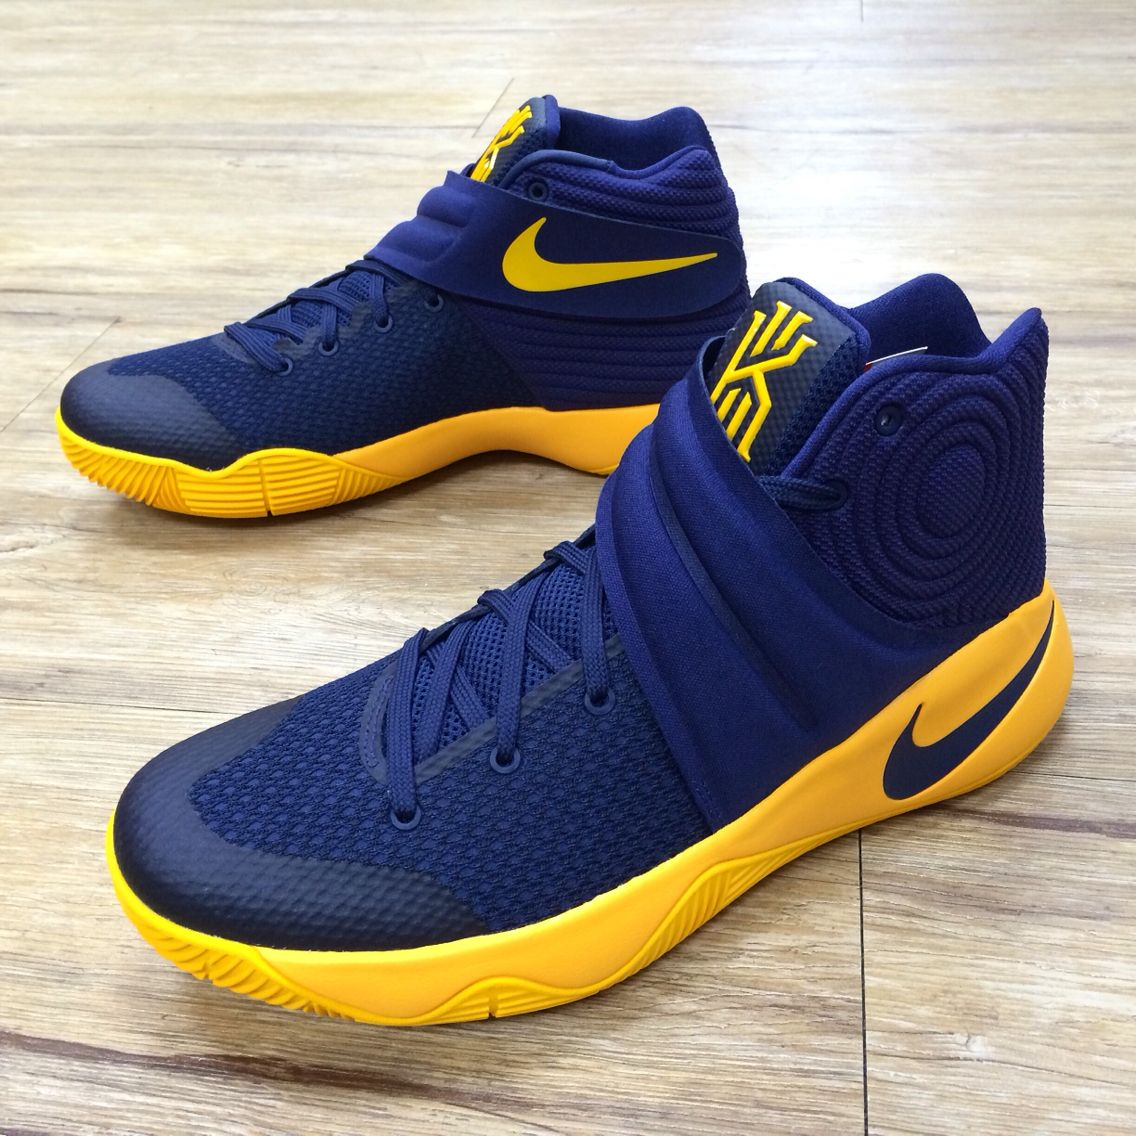 6557e5ff1f49 Nike Kyrie 2 EP II Irving Cavs Playoffs PE Navy Gold Mens Basketball  820537-447